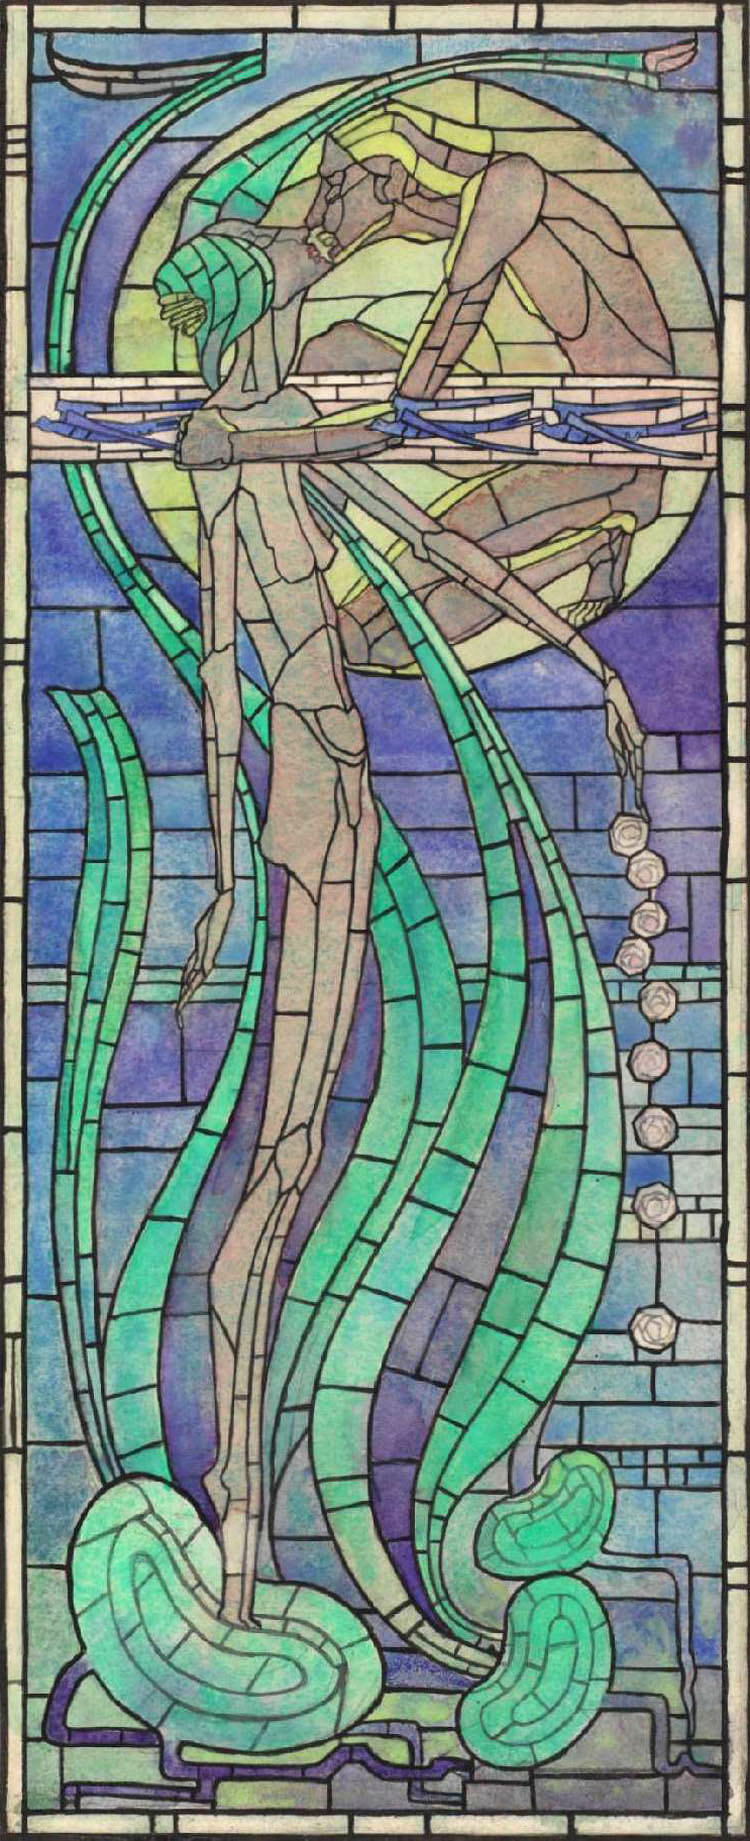 Margaret Macdonald Mackintosh,  Summer , 1894, watercolour with pen, pencil and ink on paper, 51.5 x 21.6 cm, Hunterian Art Gallery, Glasgow.   http://www.huntsearch.gla.ac.uk/cgi-bin/foxweb/huntsearch_Mackintosh/DetailedResults.fwx?SearchTerm=41047&reqMethod=Link